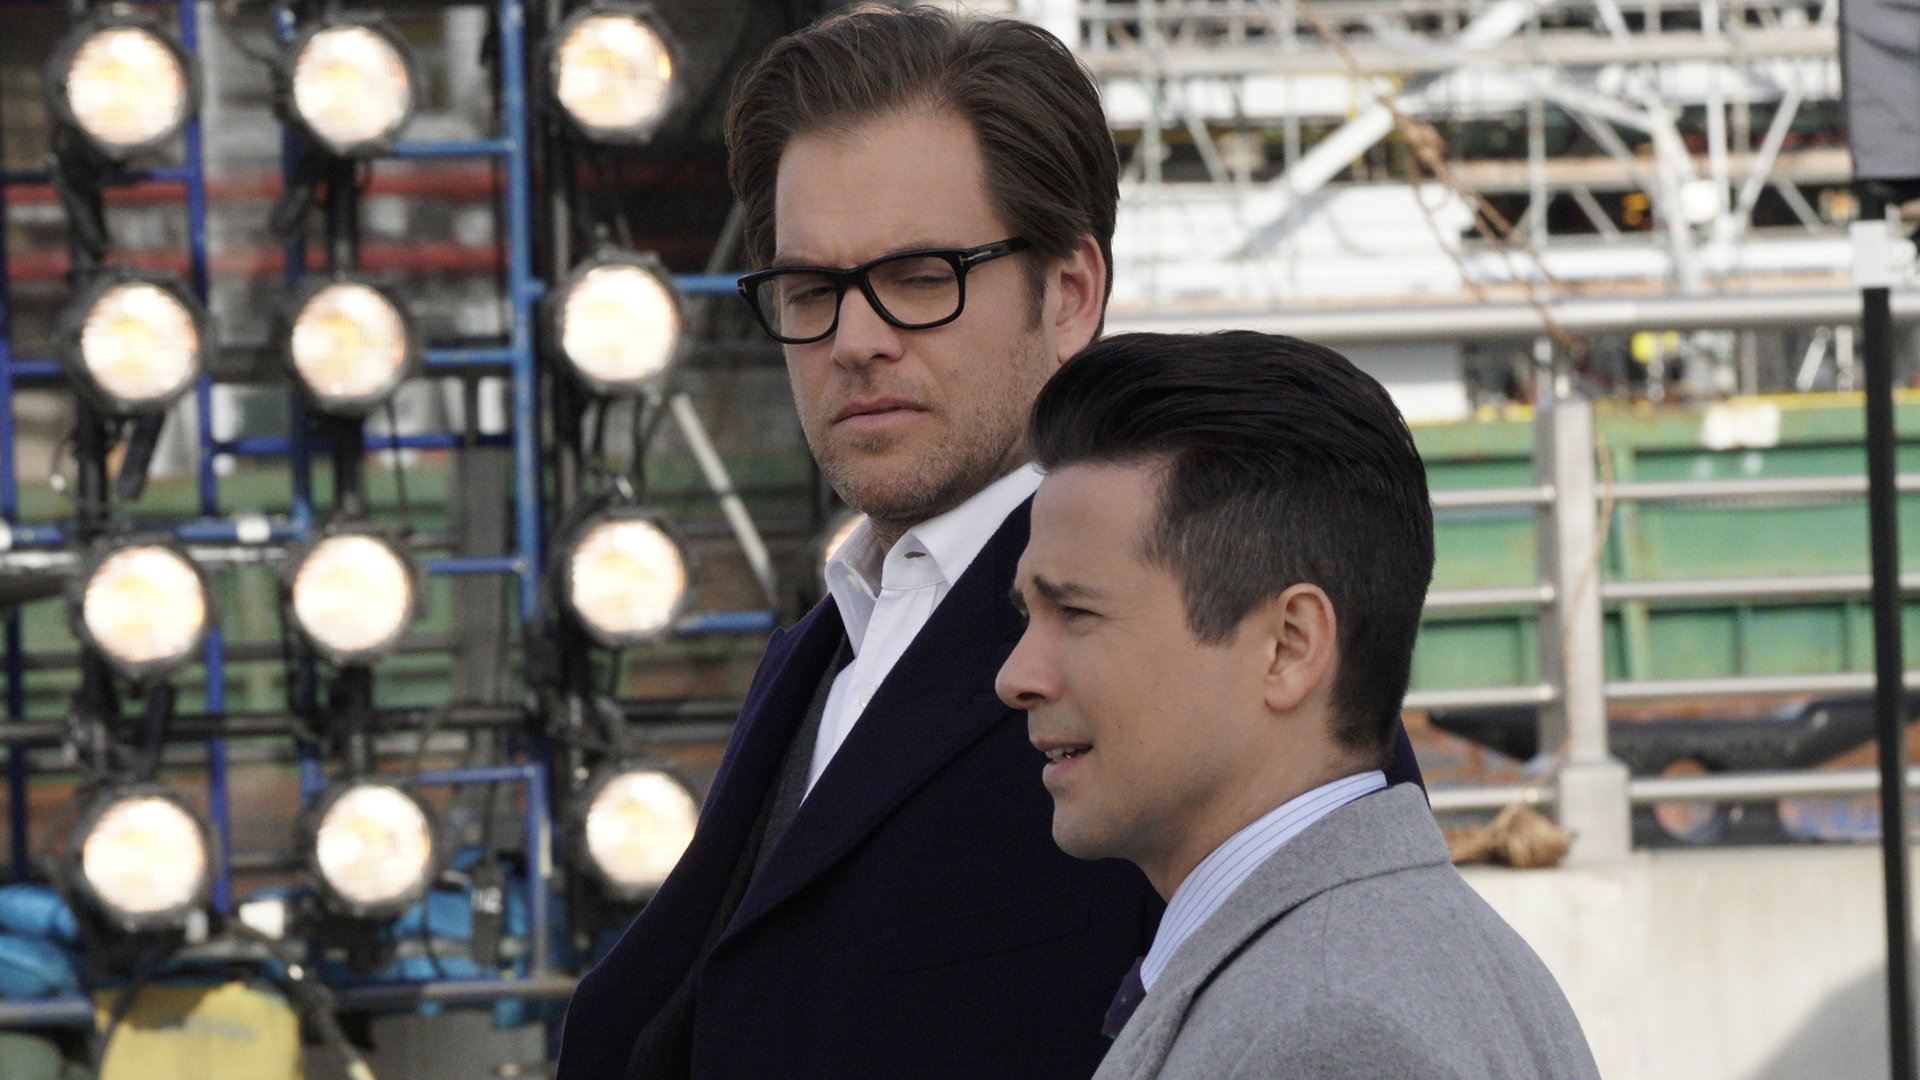 Bull and Benny discuss the case.